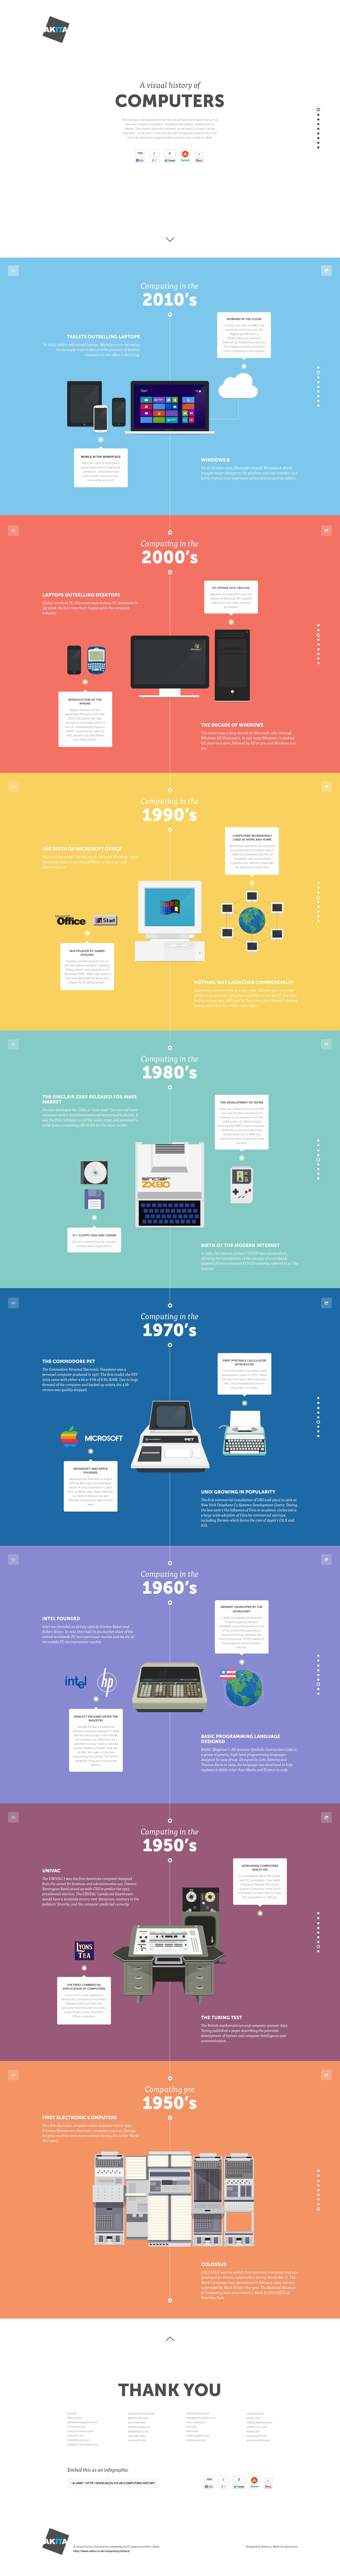 history-of-computers